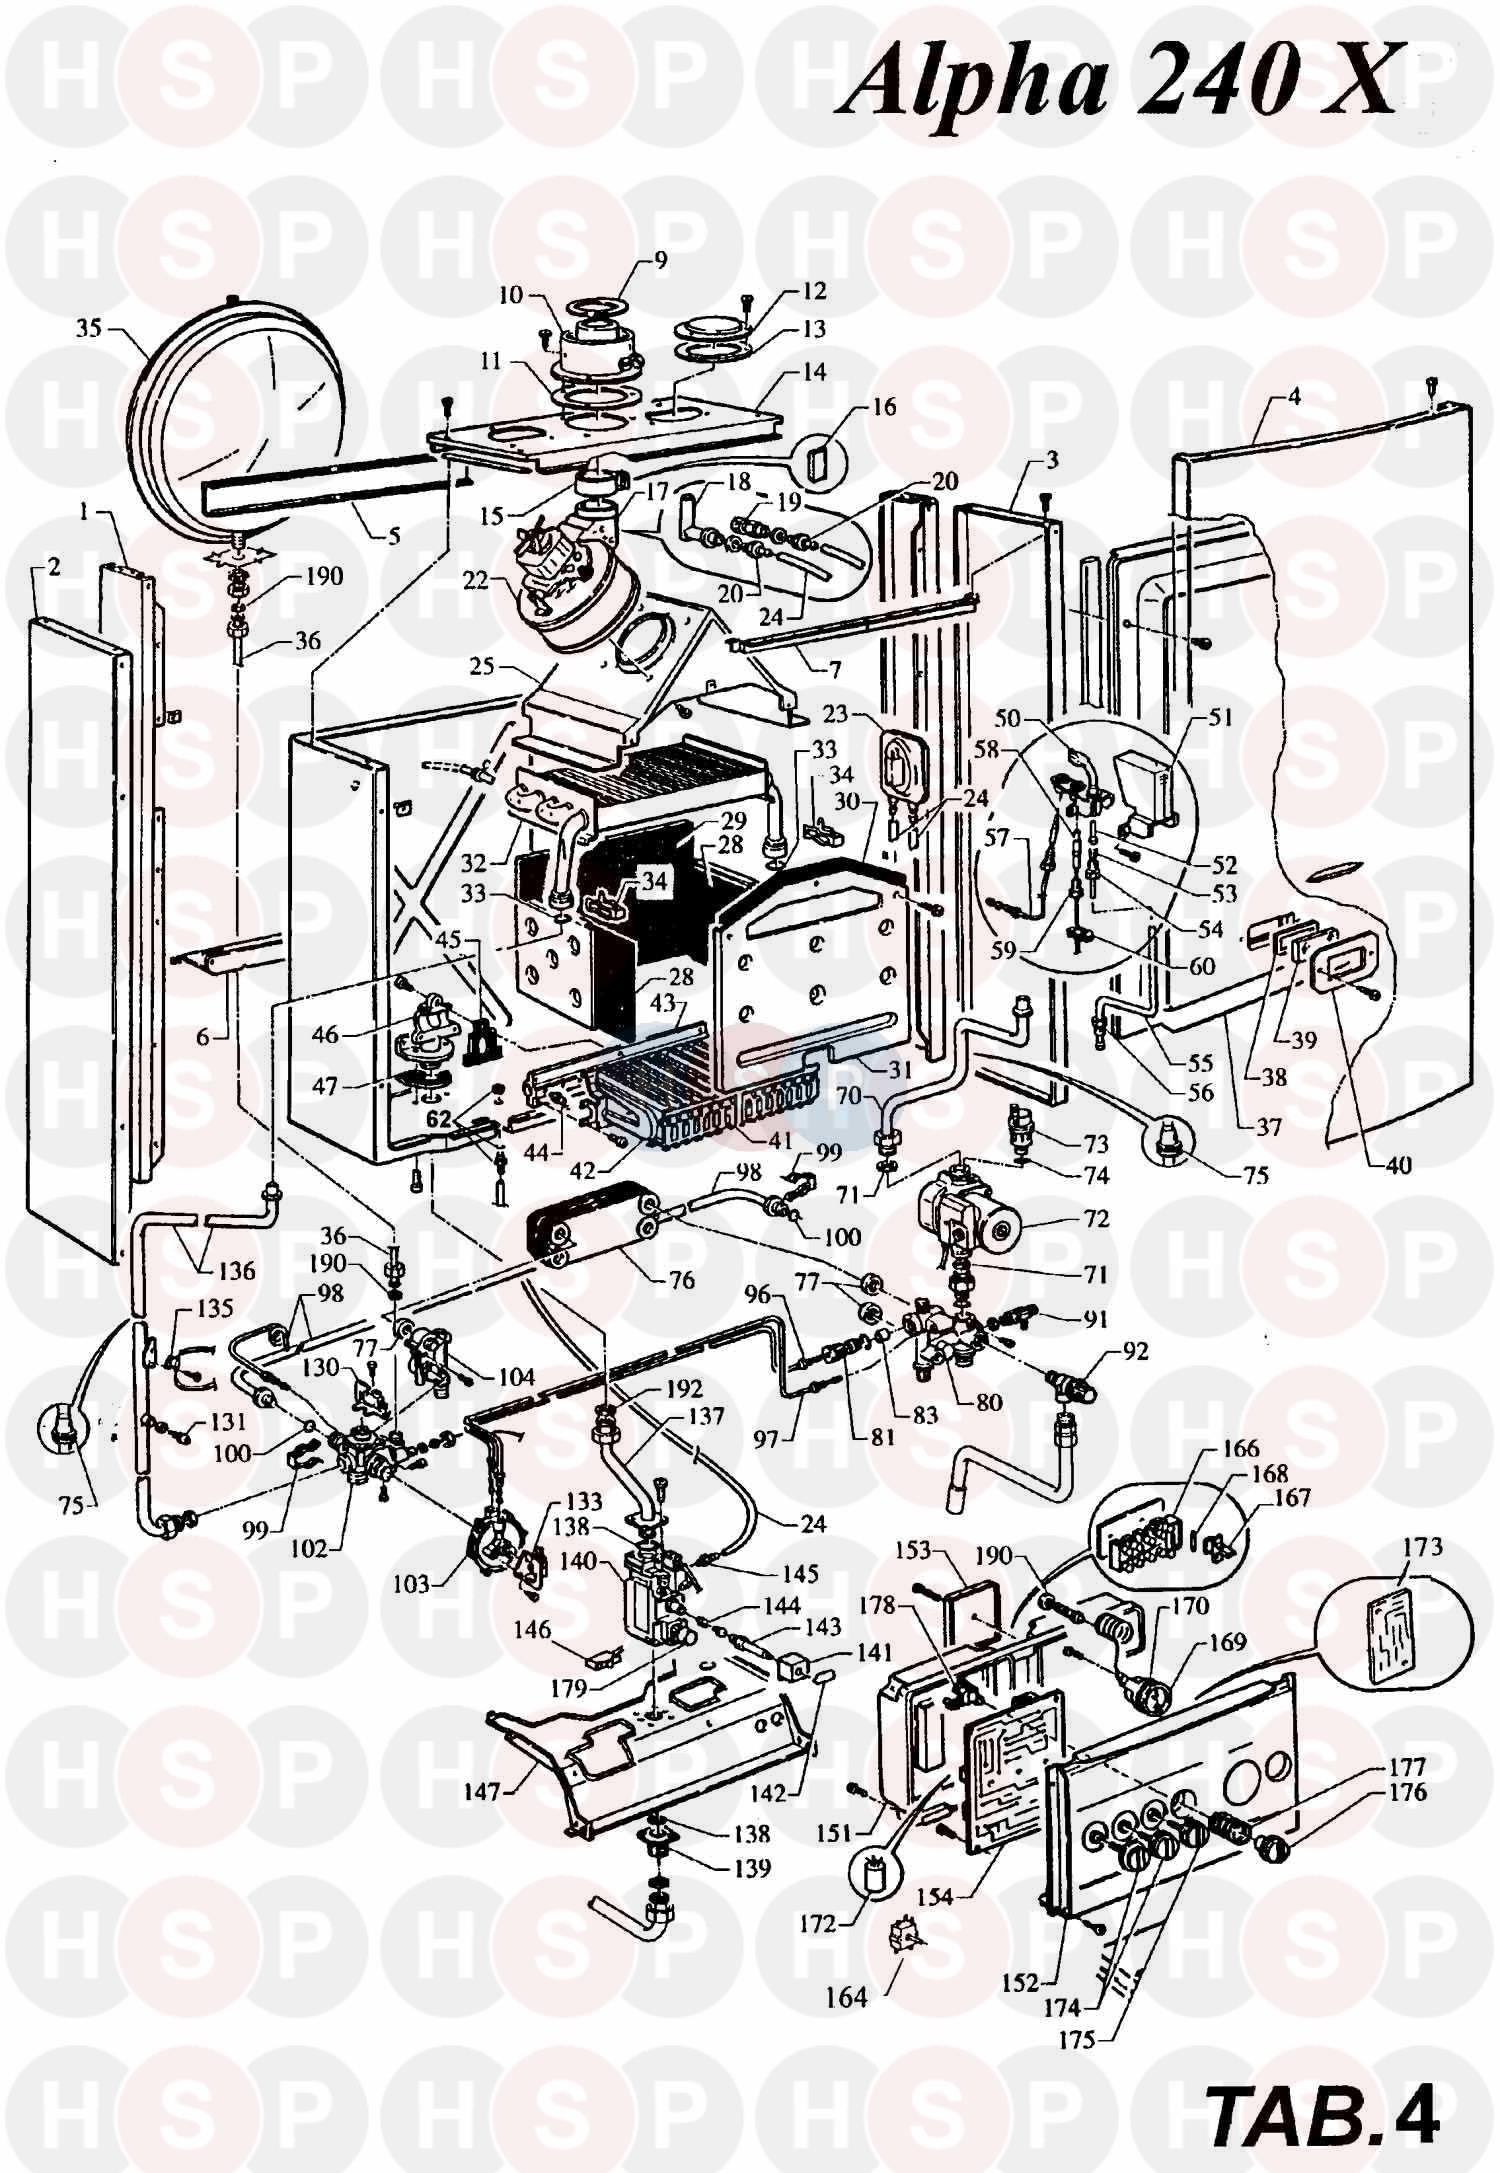 Alpha 240 X Boiler Assembly 1 Diagram Heating Spare Parts Cb50 Wiring For